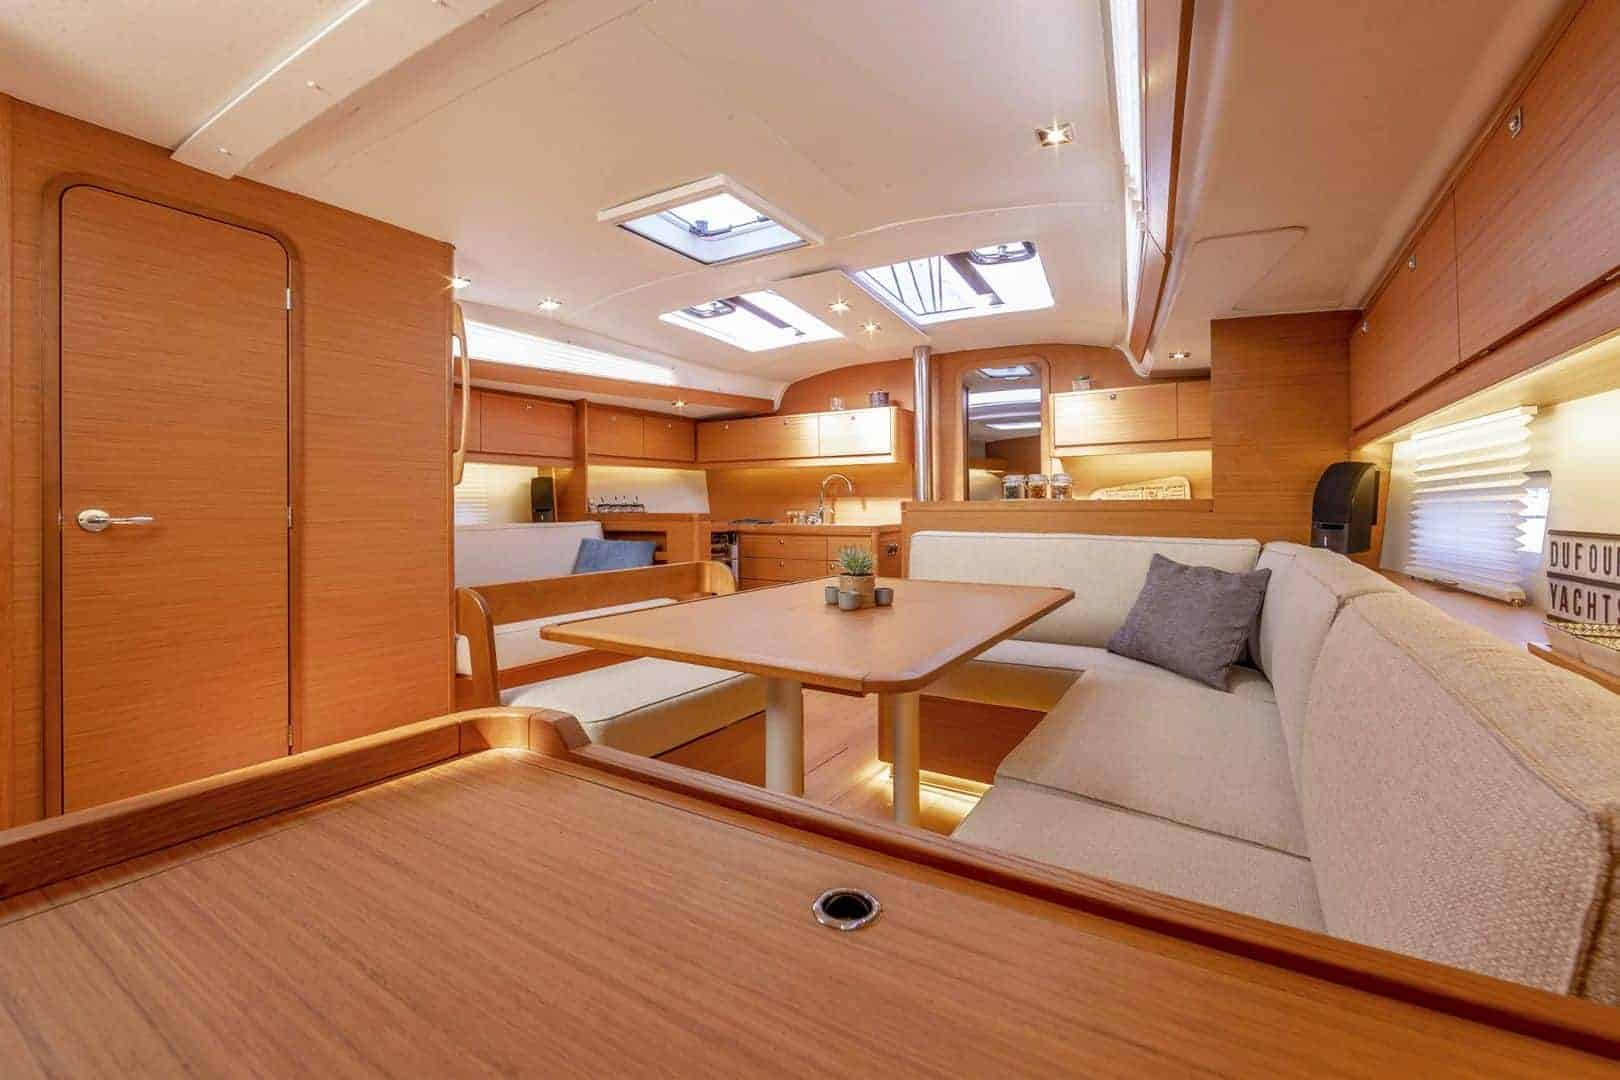 Overview of the beautiful and wooden interior of the Dufour GL 430 with saloon and galley